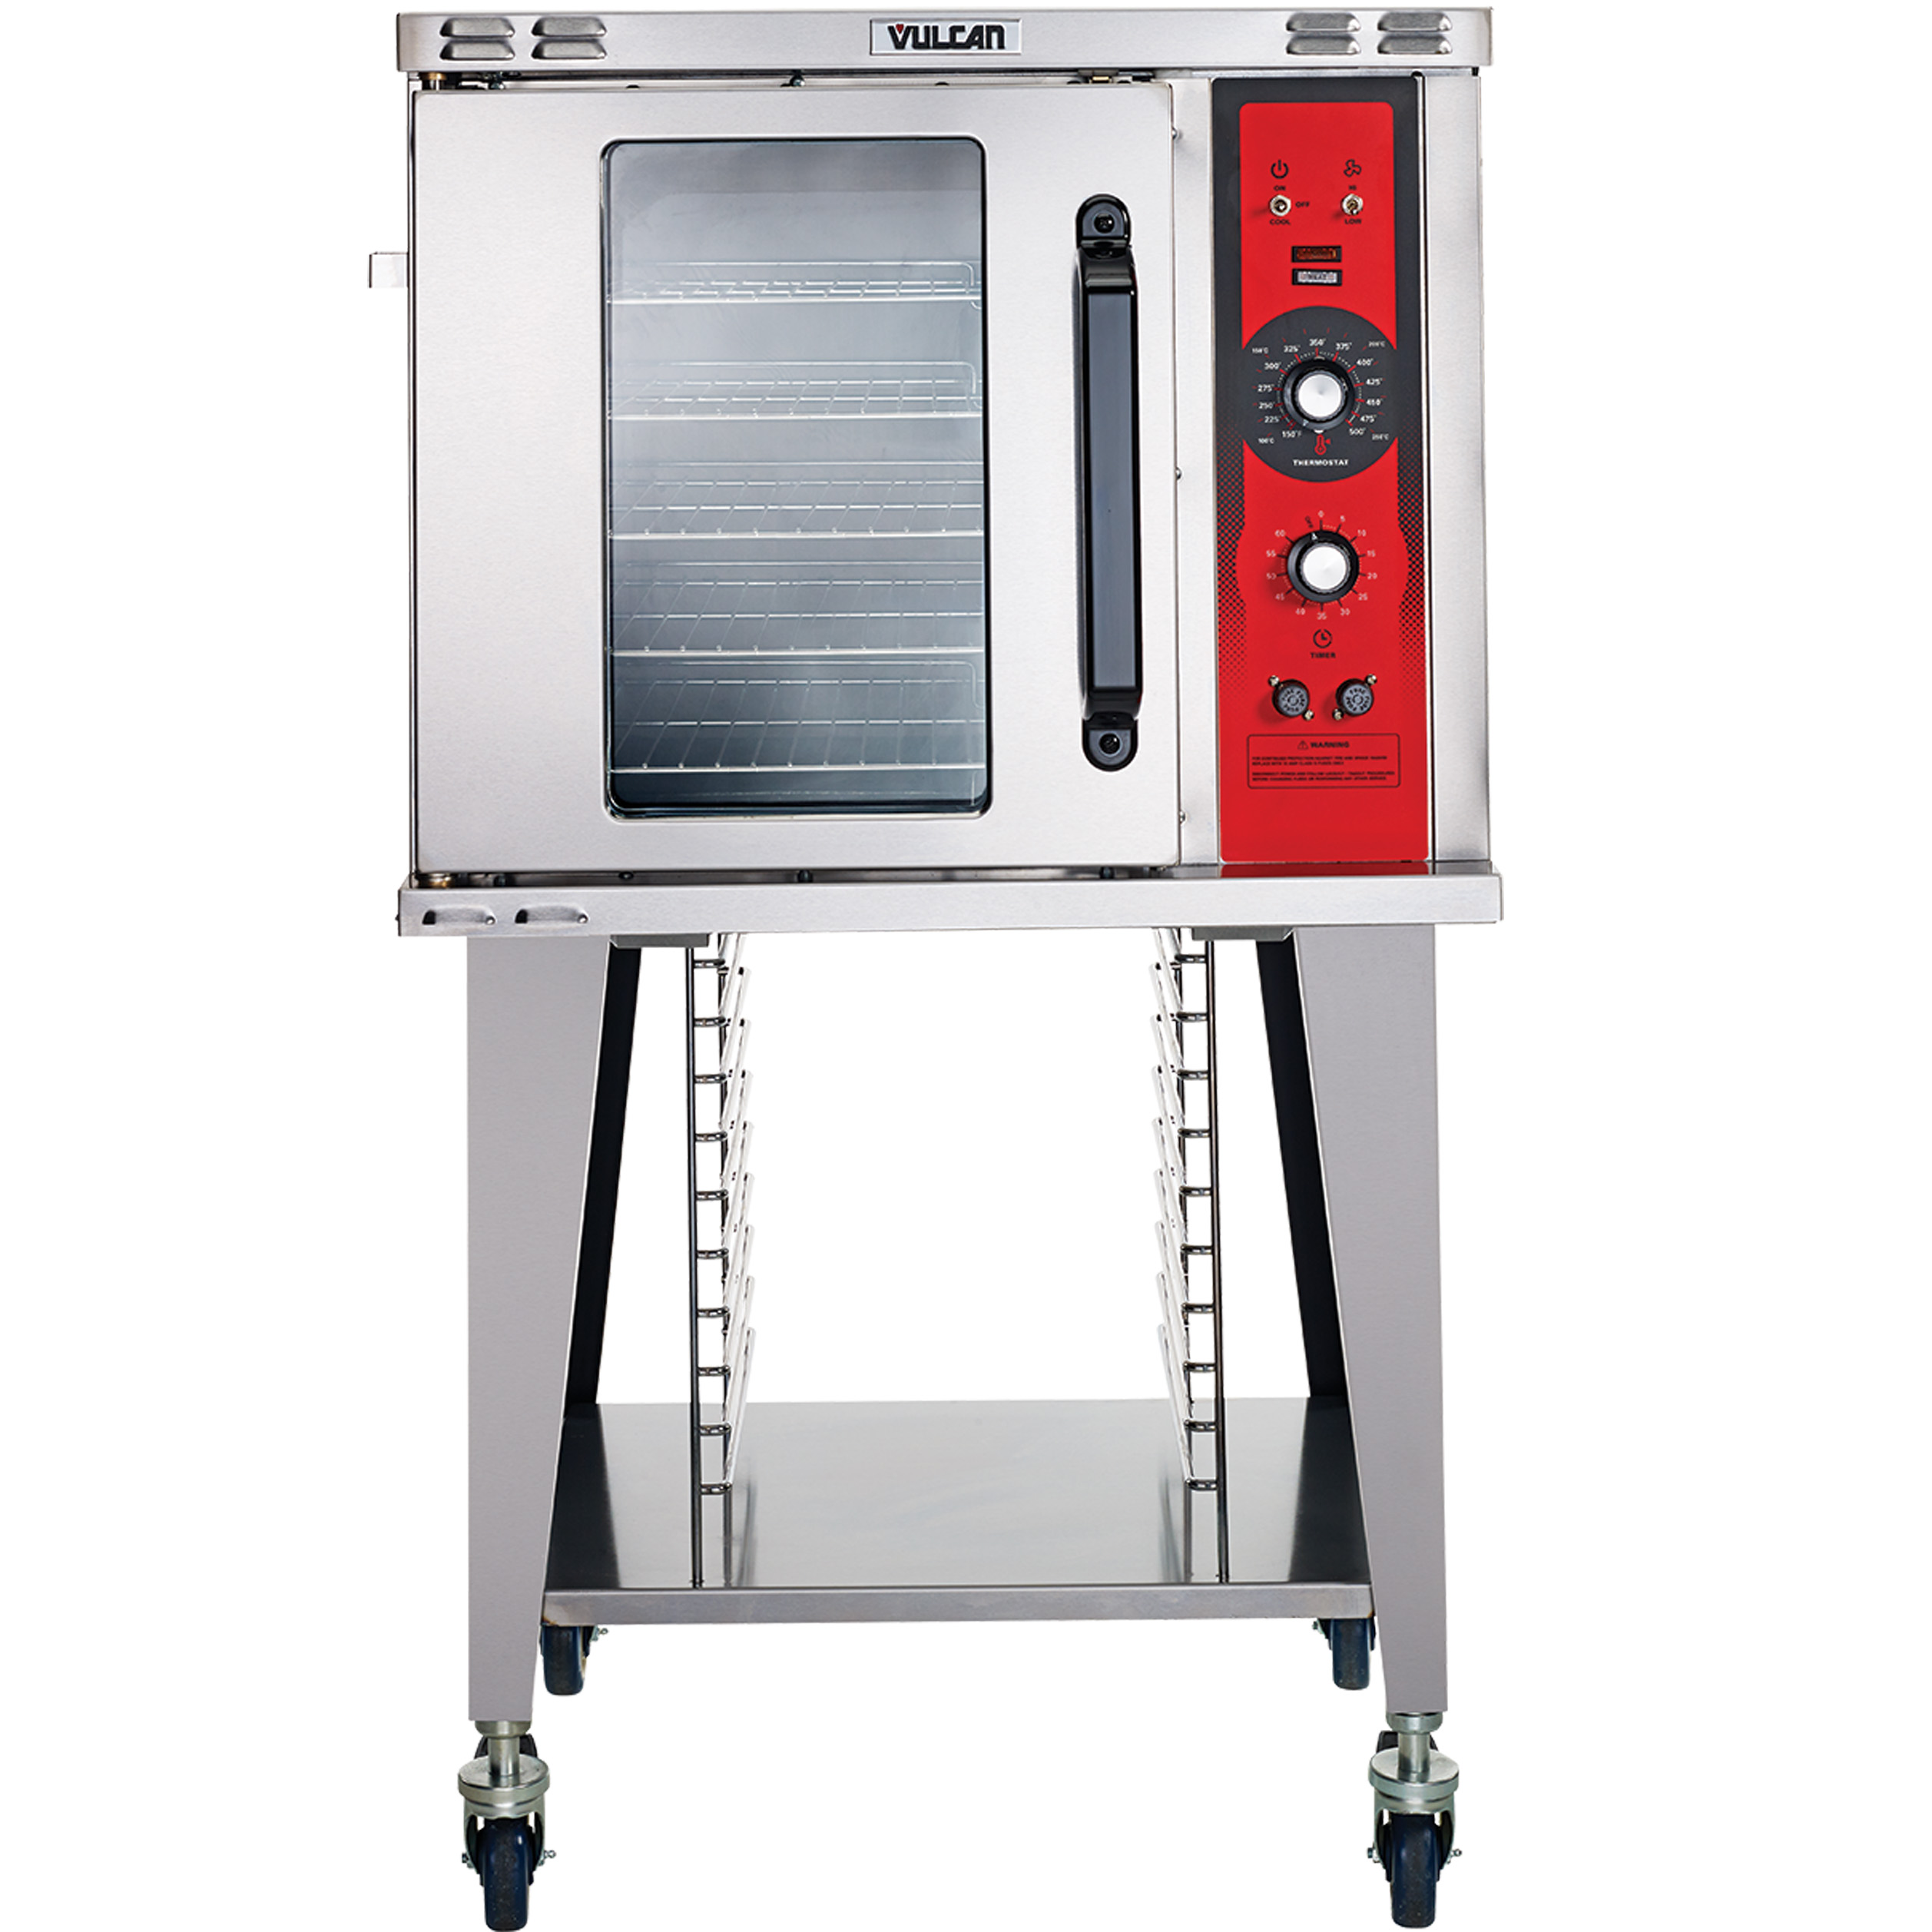 Vulcan ECO2D convection oven, electric